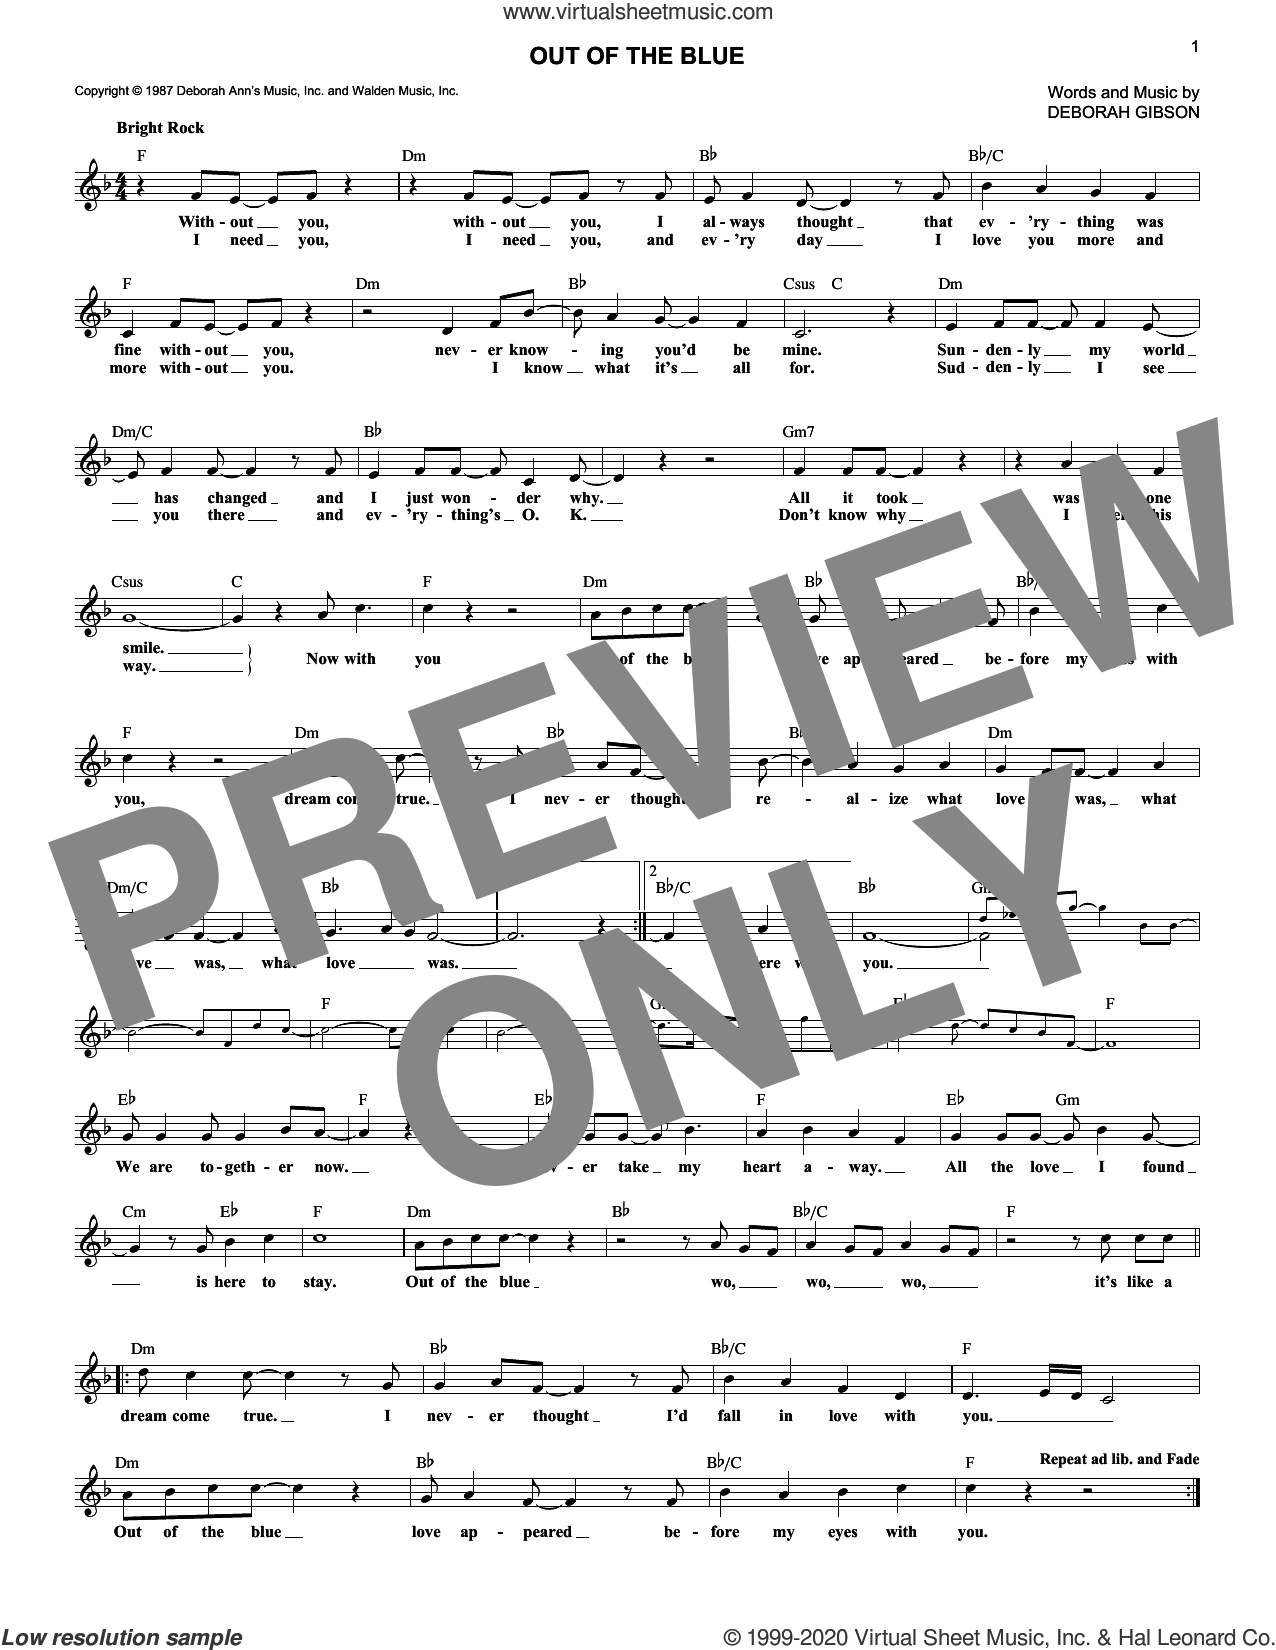 Out Of The Blue sheet music for voice and other instruments (fake book) by Debbie Gibson and Deborah Gibson, intermediate skill level